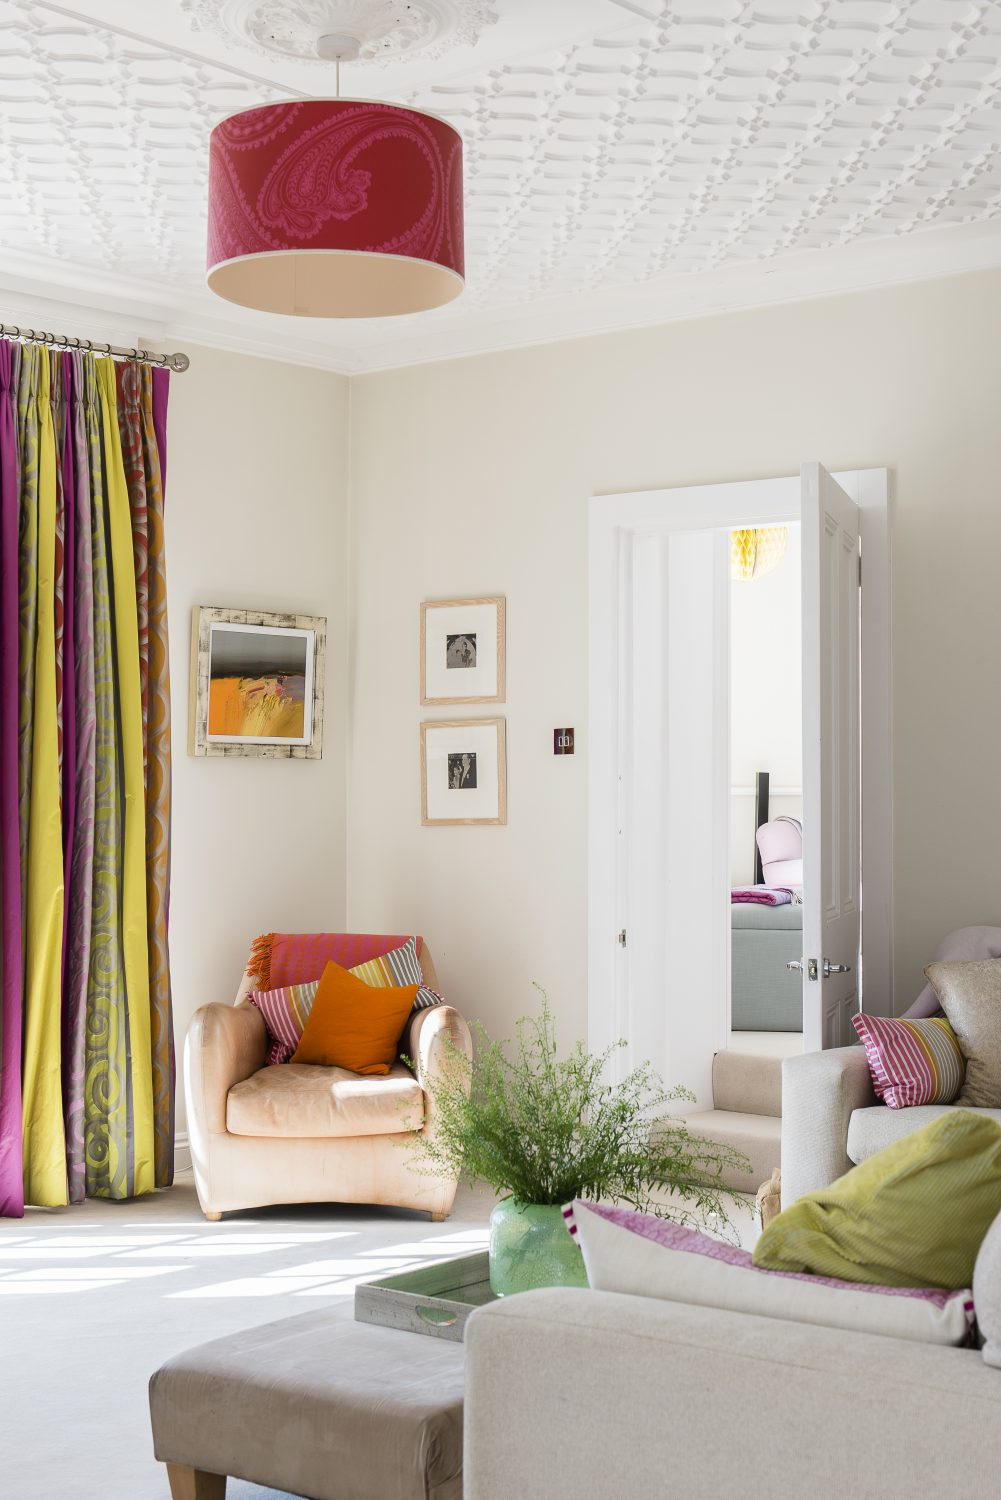 The curtain fabric is by Designers Guild. Sara changes the cushion covers, which are supplied by Spyros Hambis - Studio Interiors, seasonally. The painting was bought while travelling